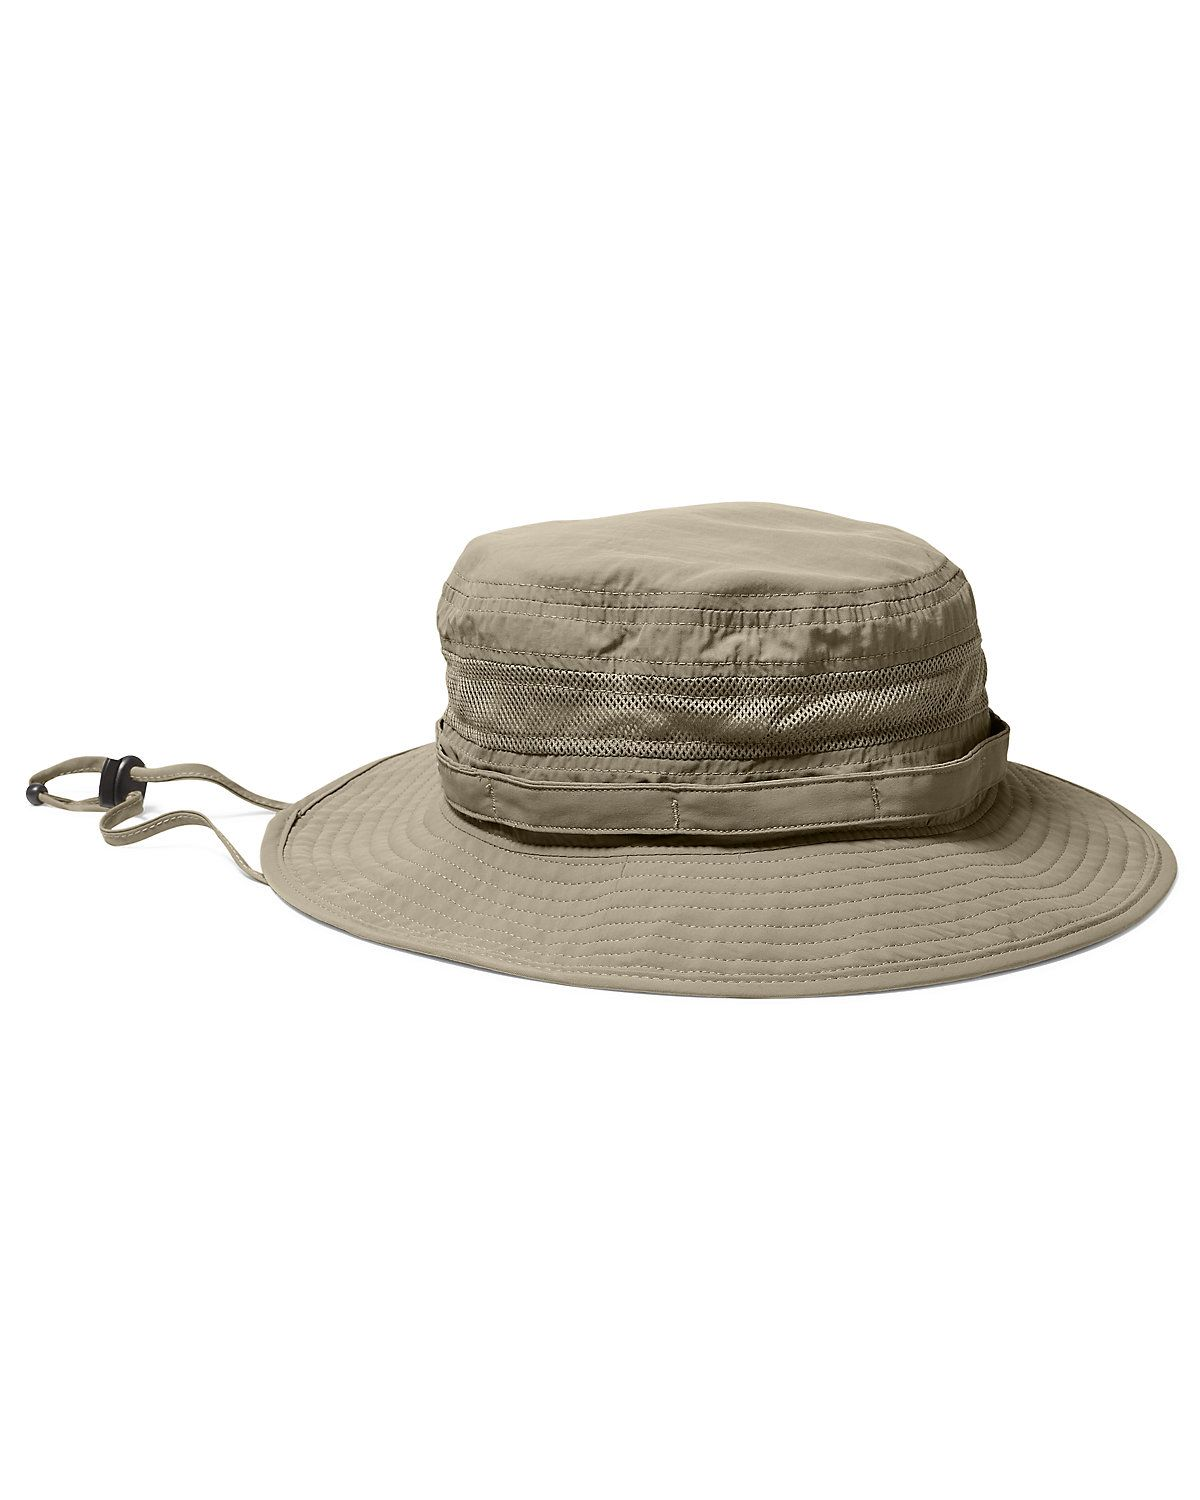 c2aaecd33e13a Exploration UPF Vented Boonie Hat